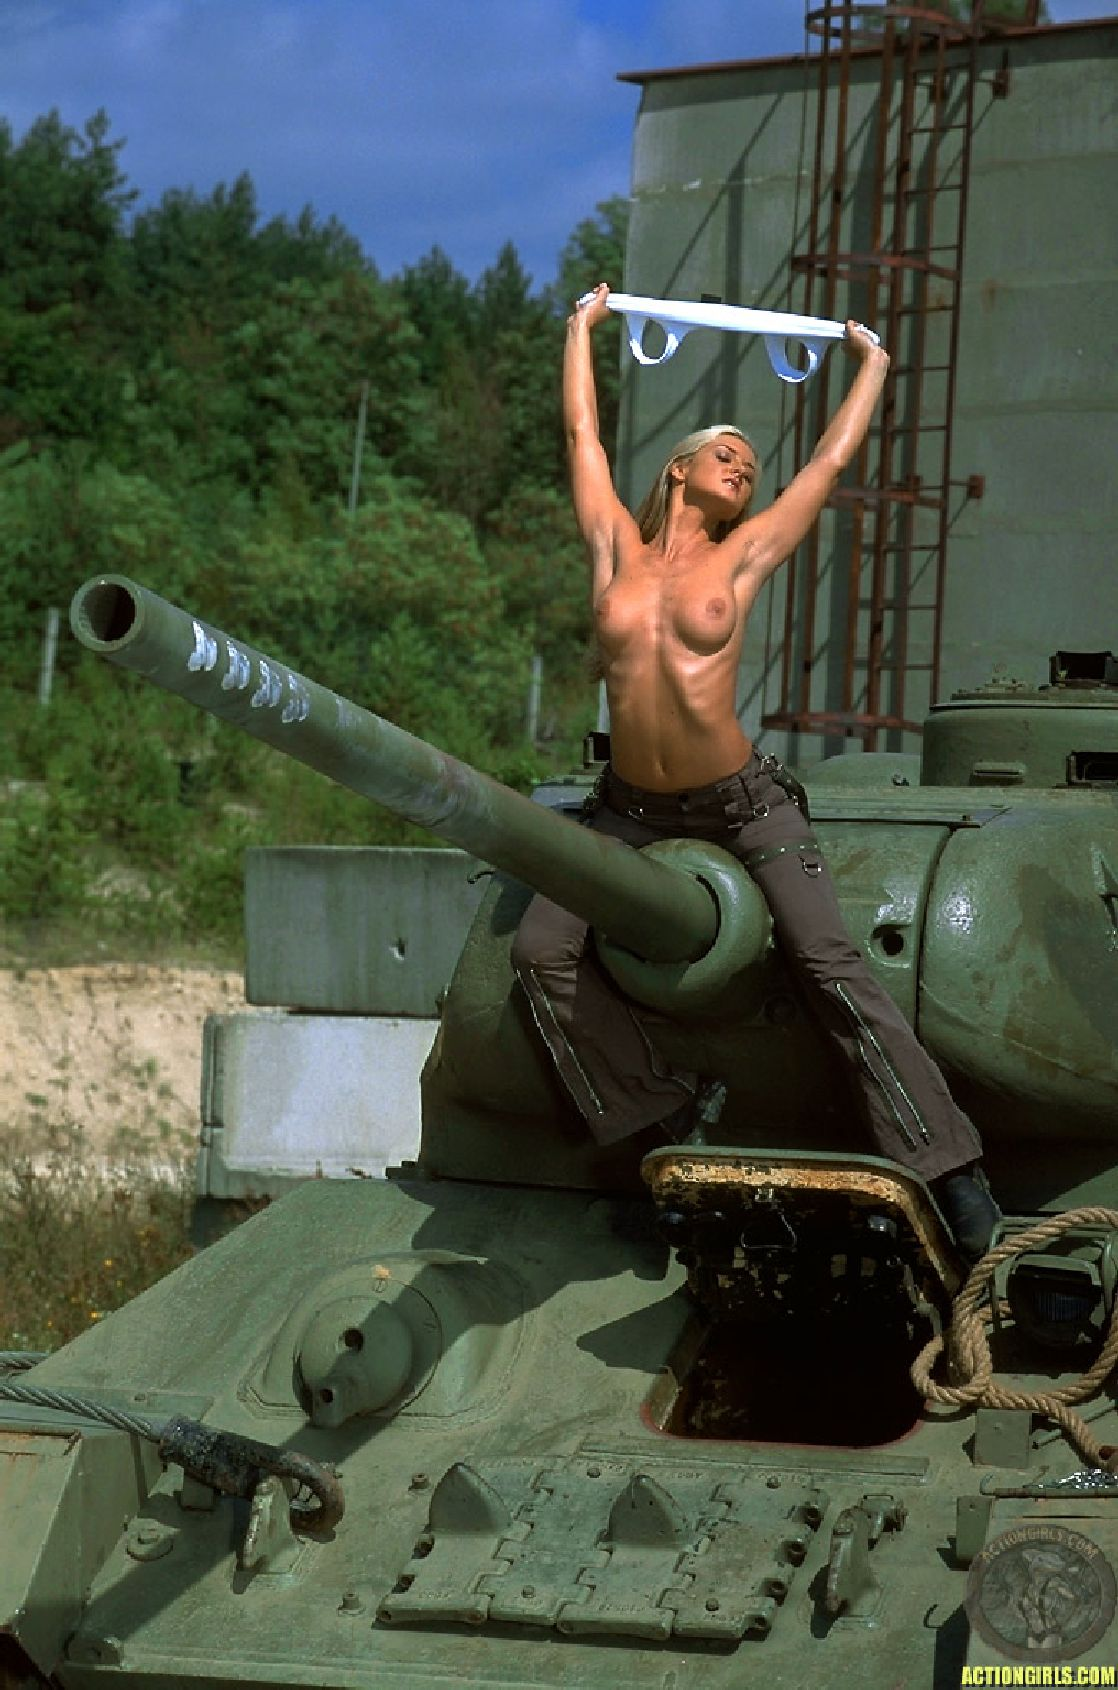 http://www.tikiwebgroup.com/tikitumble/wp-content/uploads/sites/15/2009/10/nsfw-topless-tank-girl-with-huge-turret.jpg